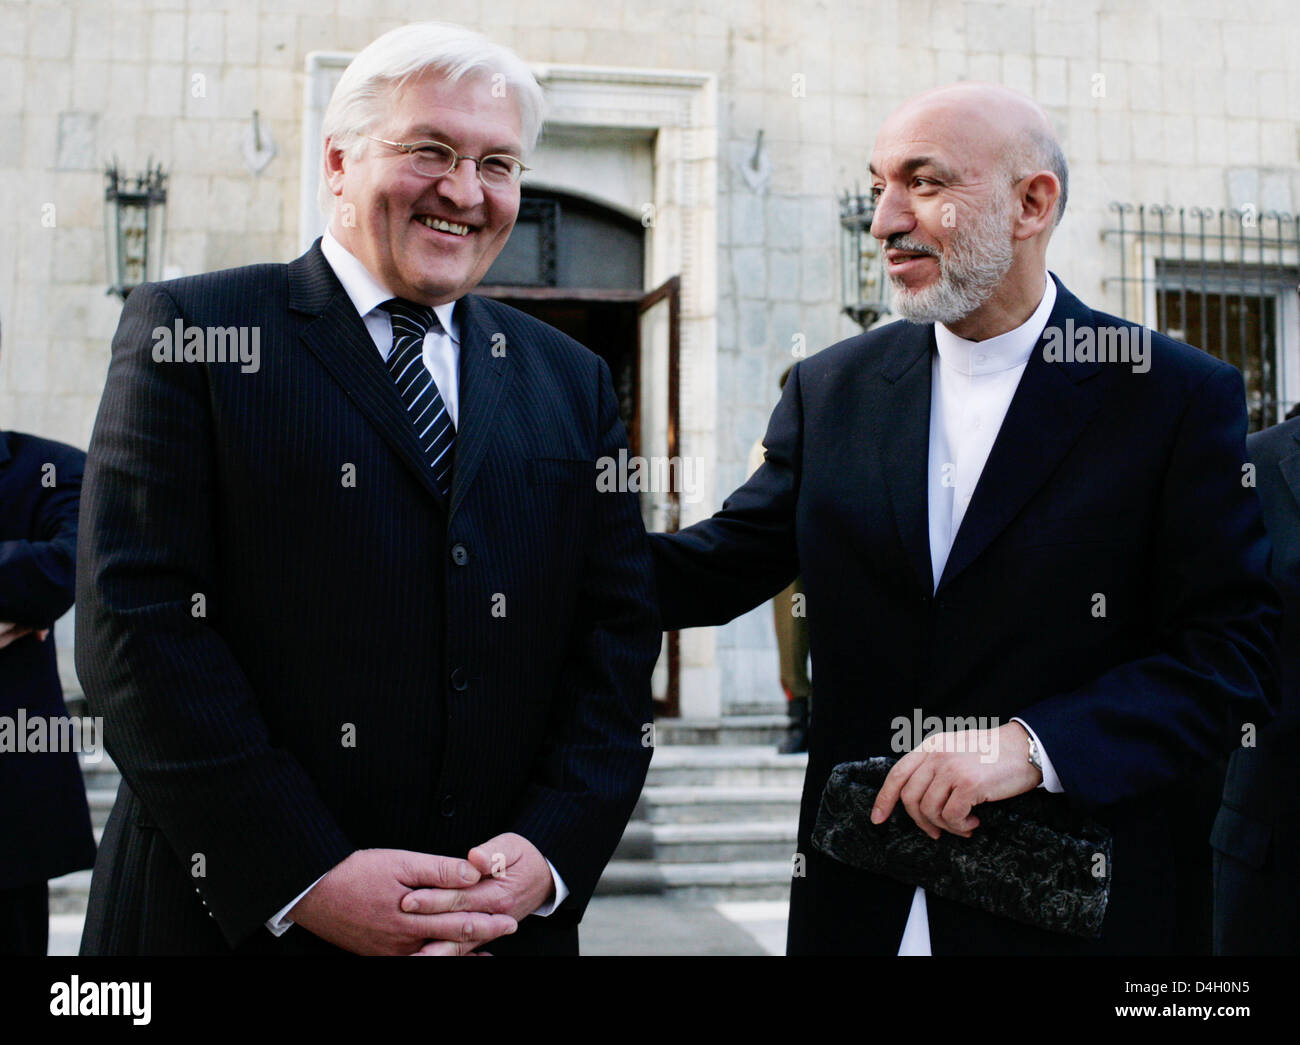 German Foreign Minister Frank-Walter Steinmeier (L) meets with Afghan President Hamid Karzai (R) in Kabul, Afghanistan, - Stock Image